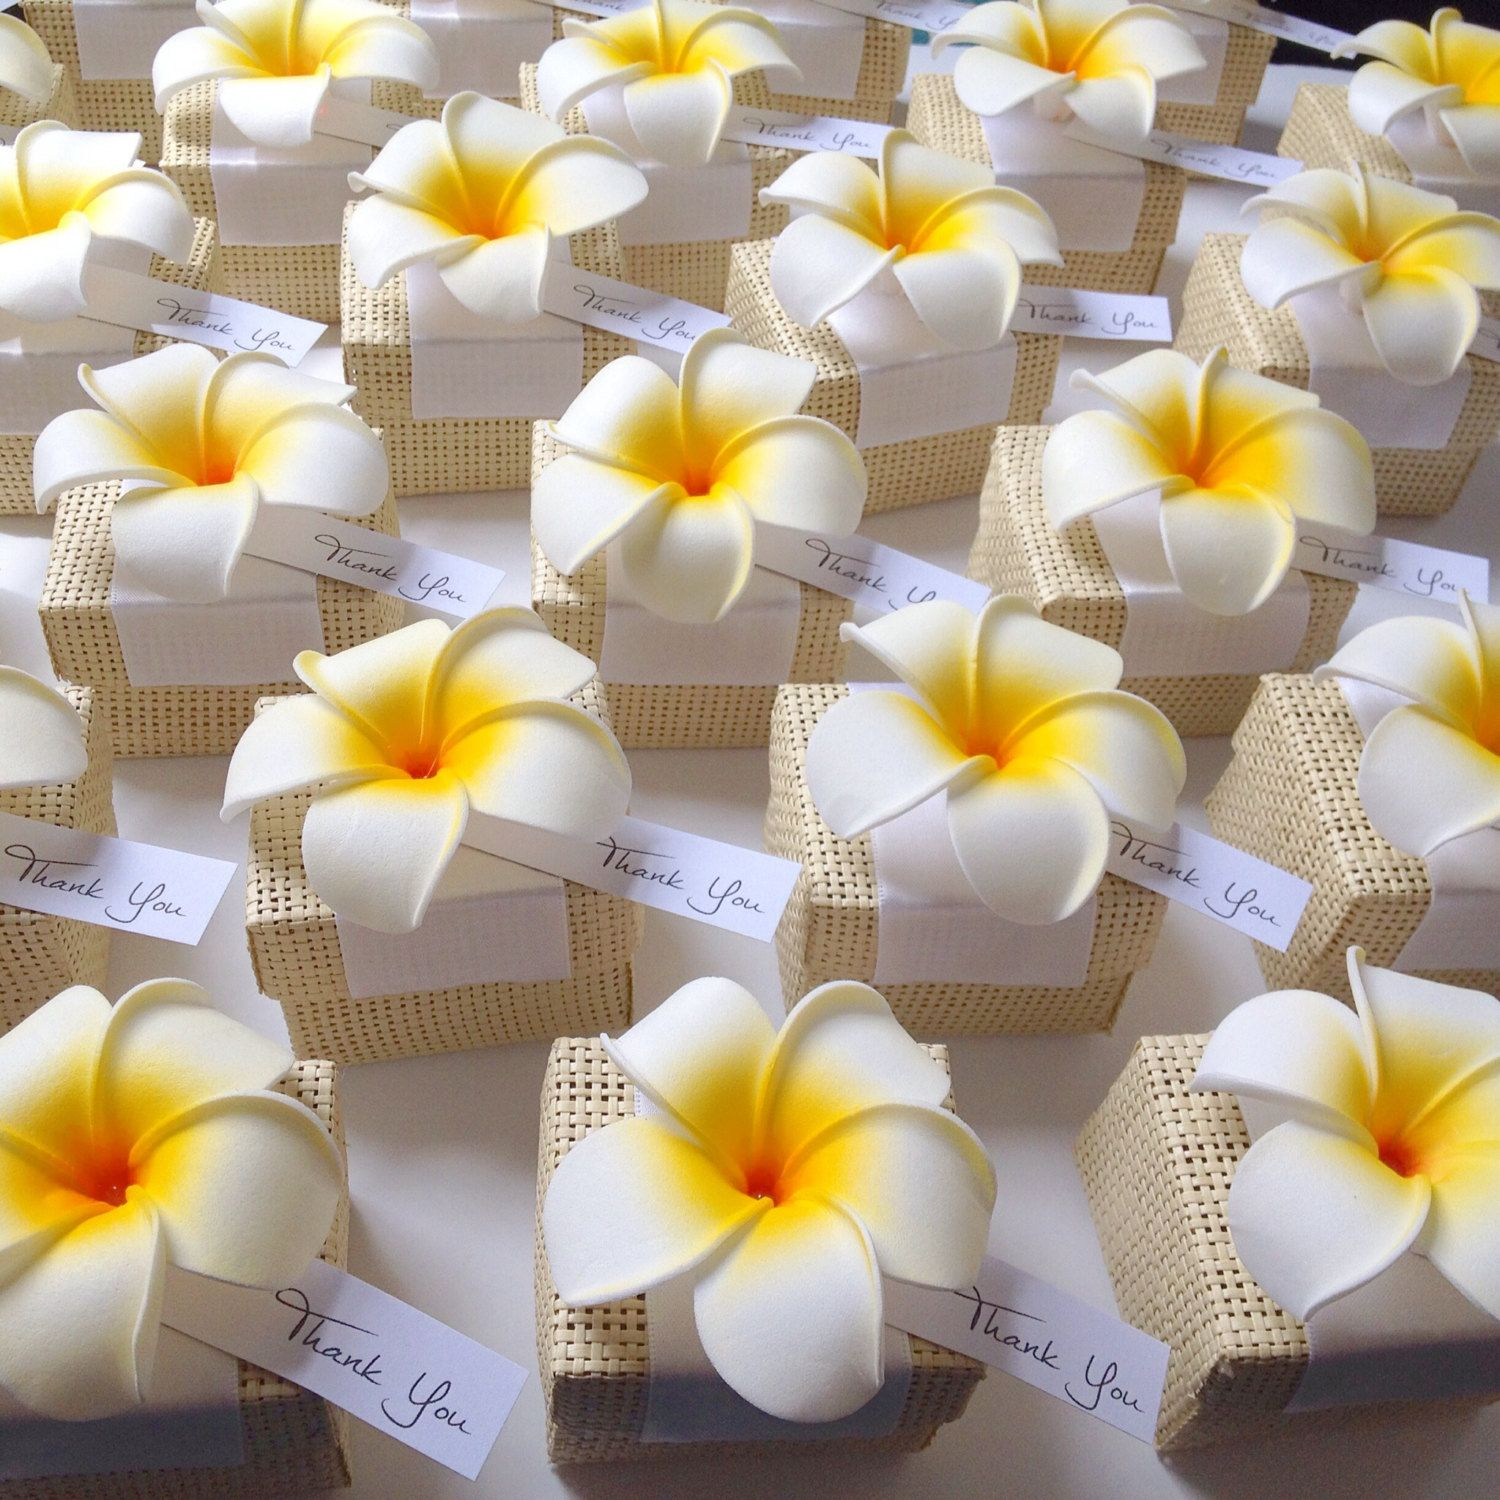 Hawaiian Themed Wedding Ideas: Organic Woven Favor Box With Plumeria Flower Accent